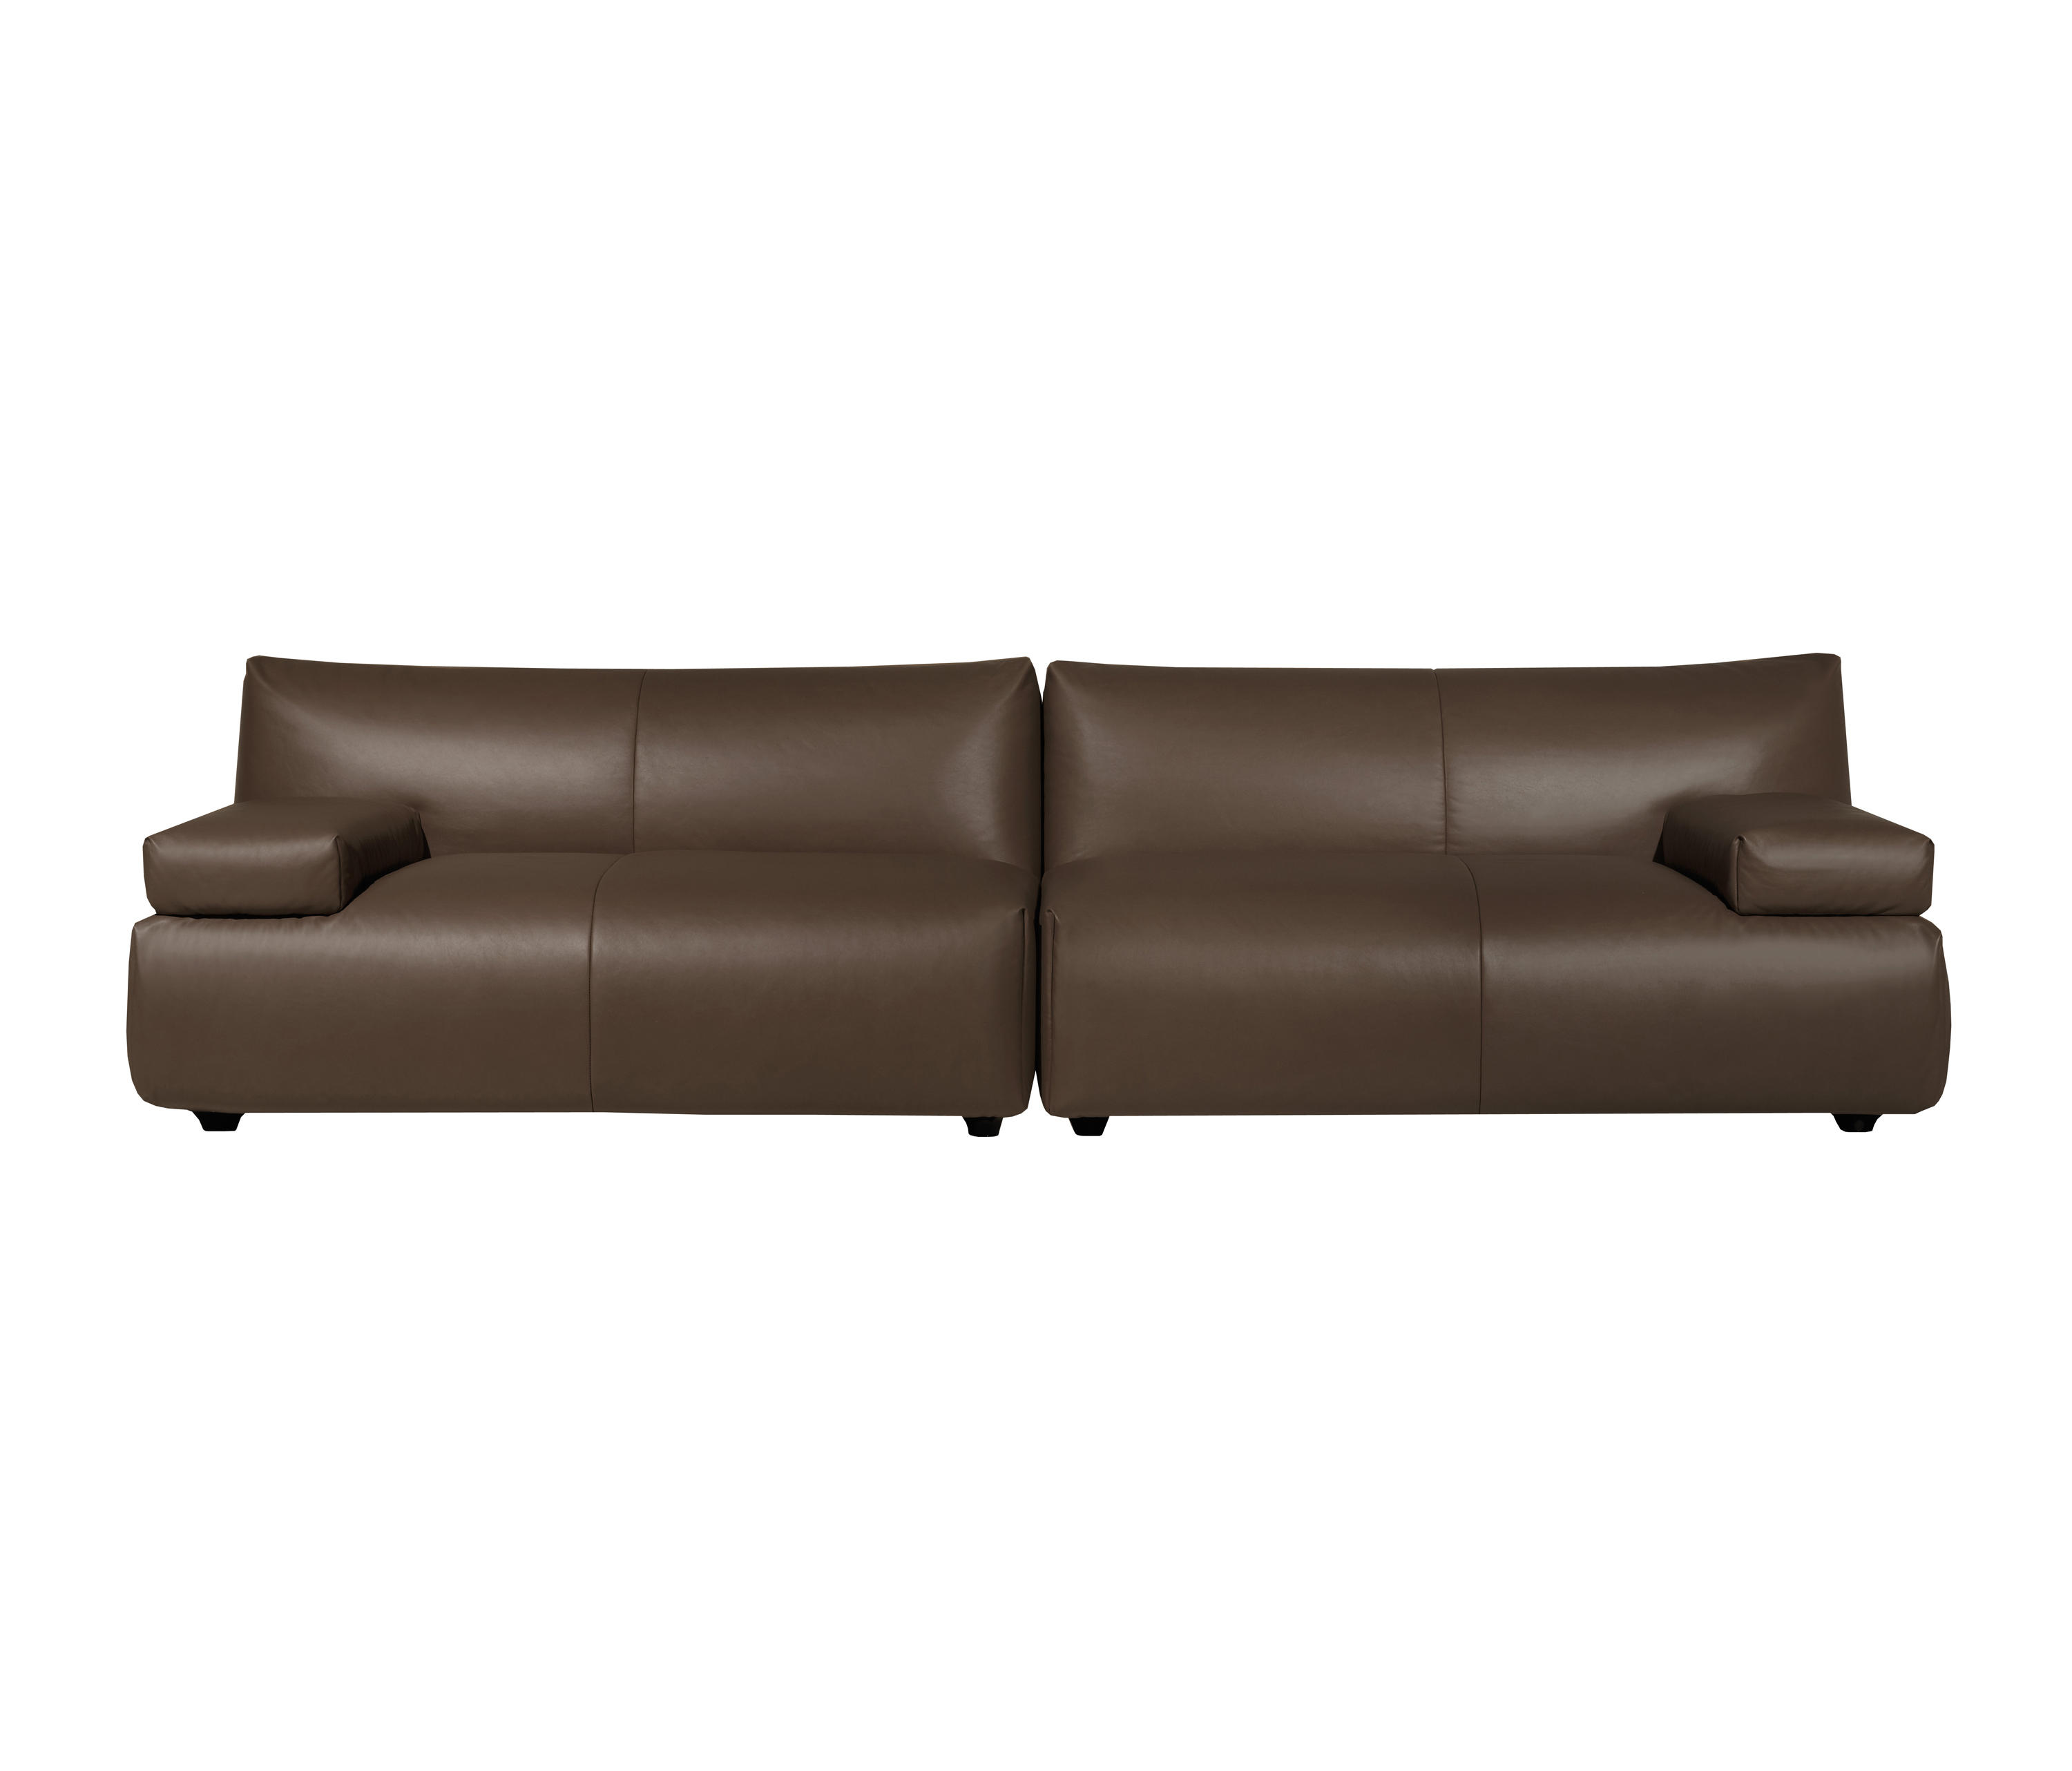 AGADIR SECTIONAL SOFA Sofas from Fendi Casa